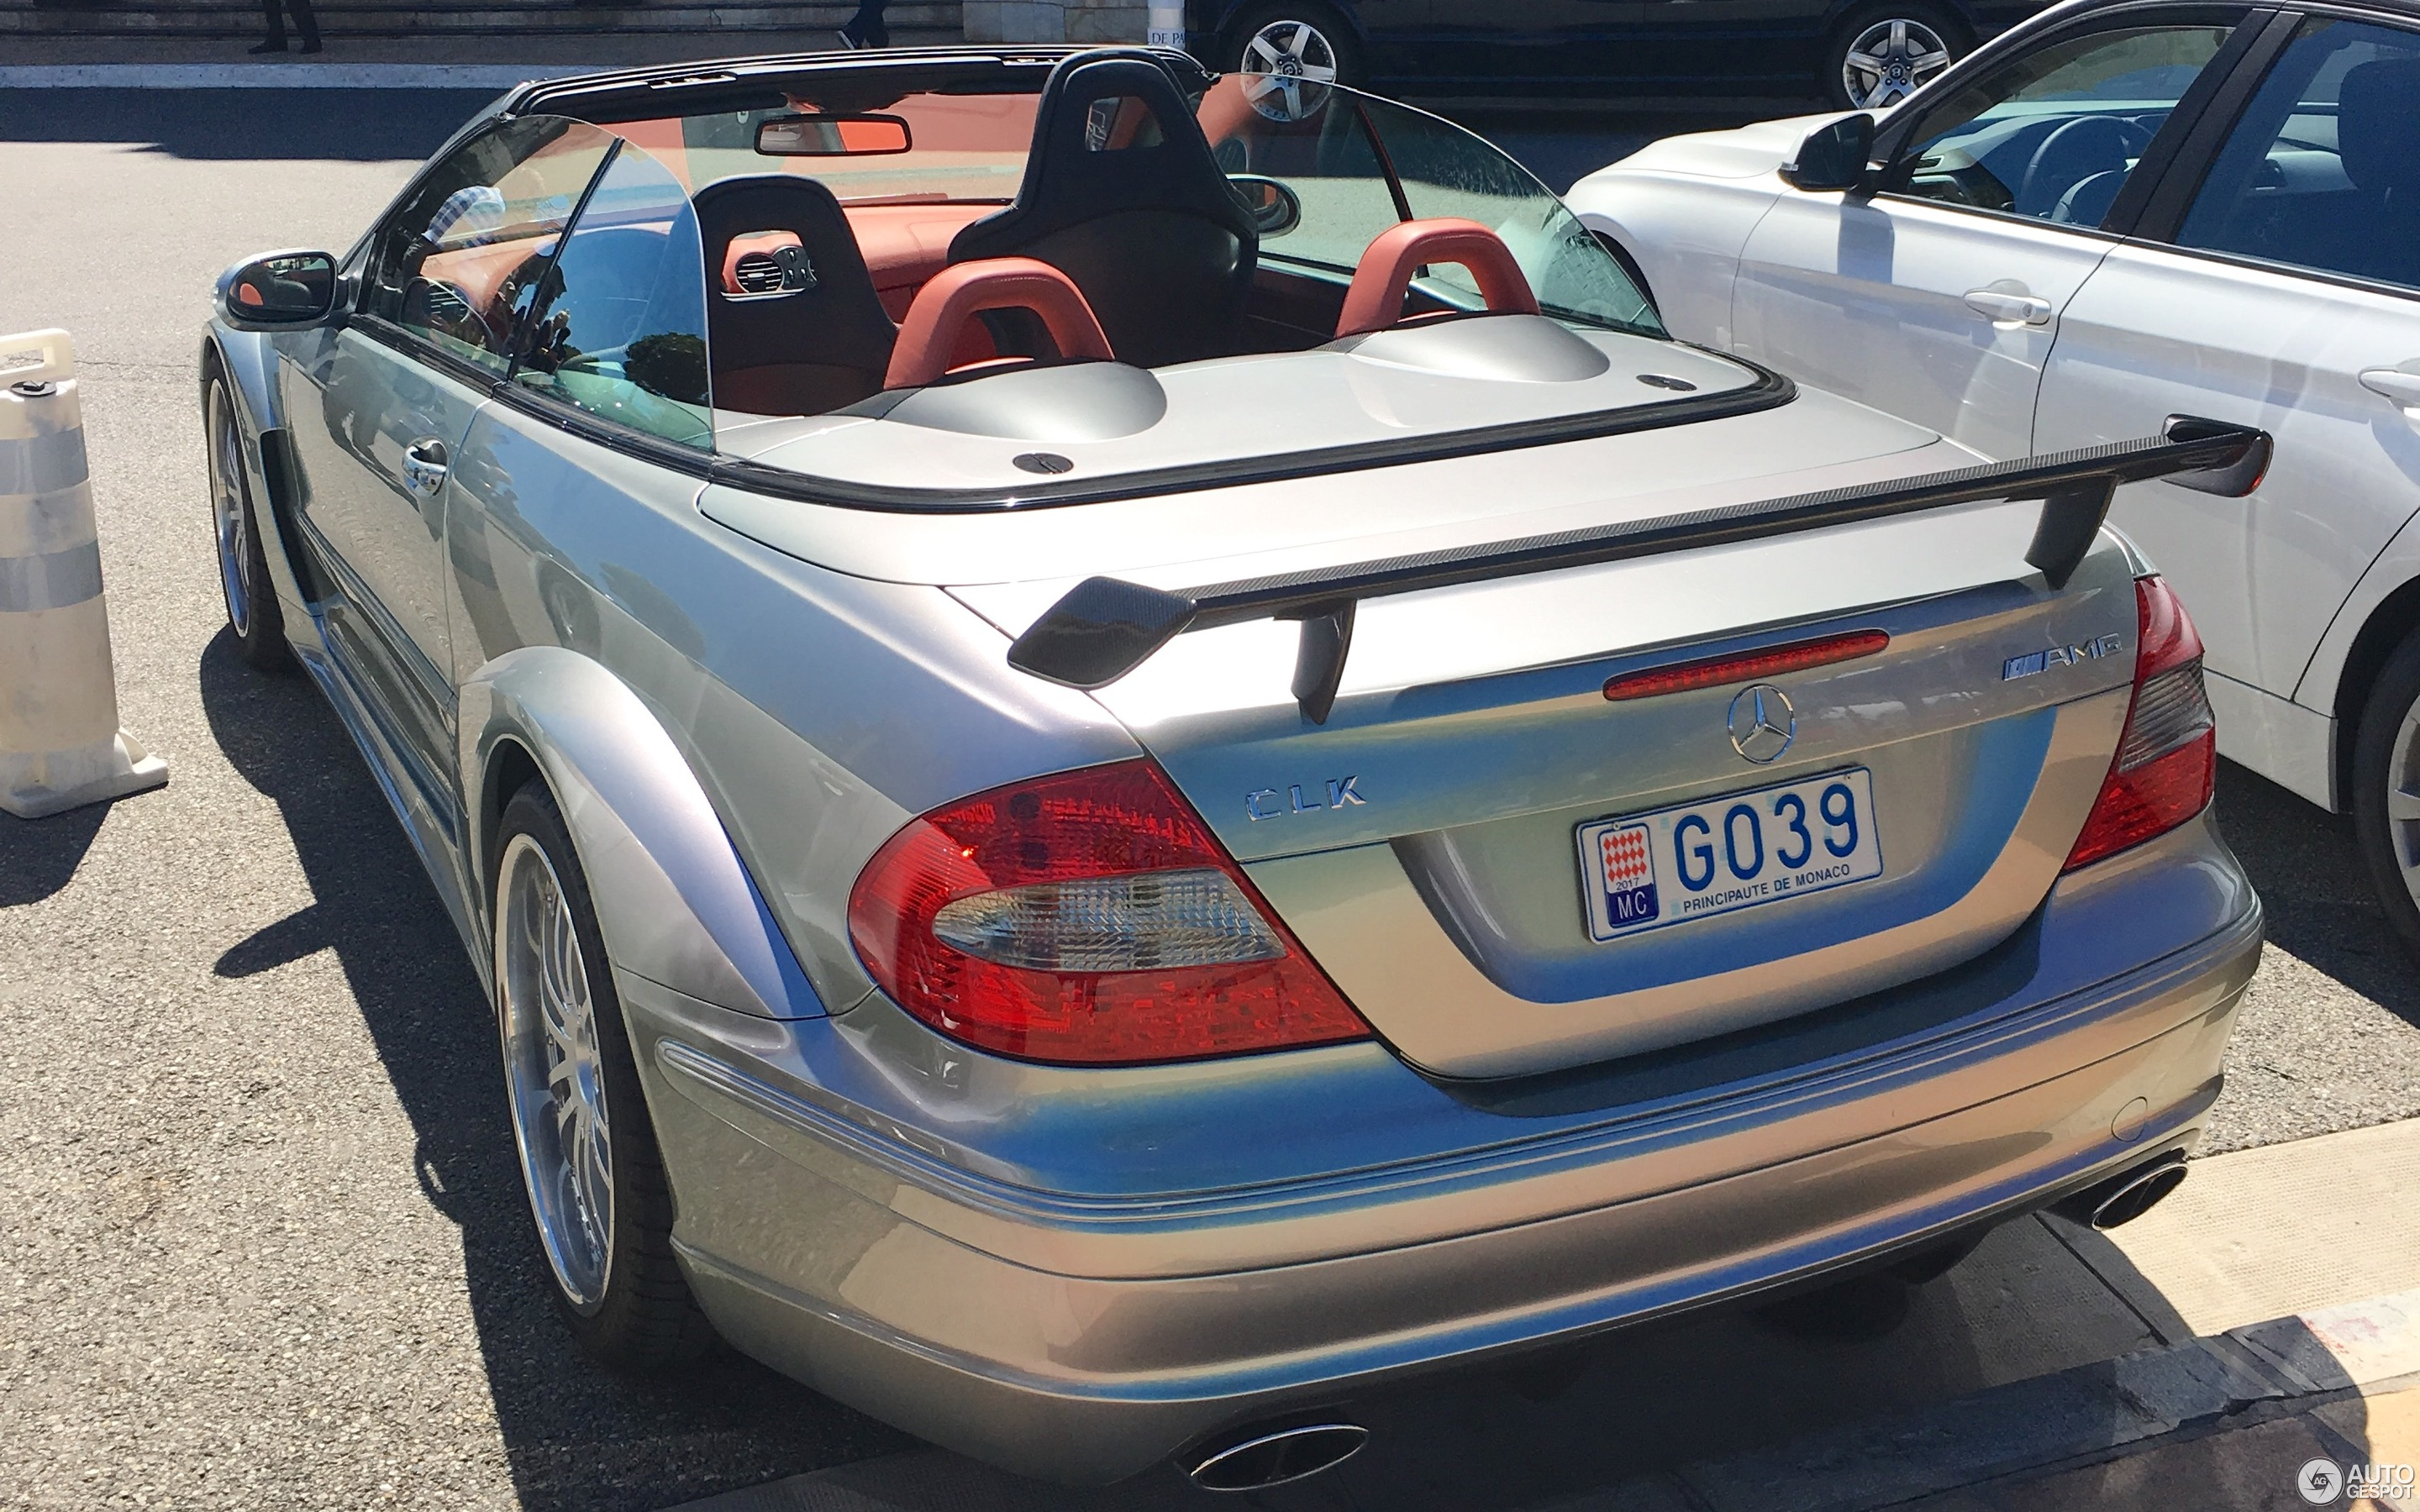 wallpaper maybach used cabriolet benz convertible mercedes pictures information